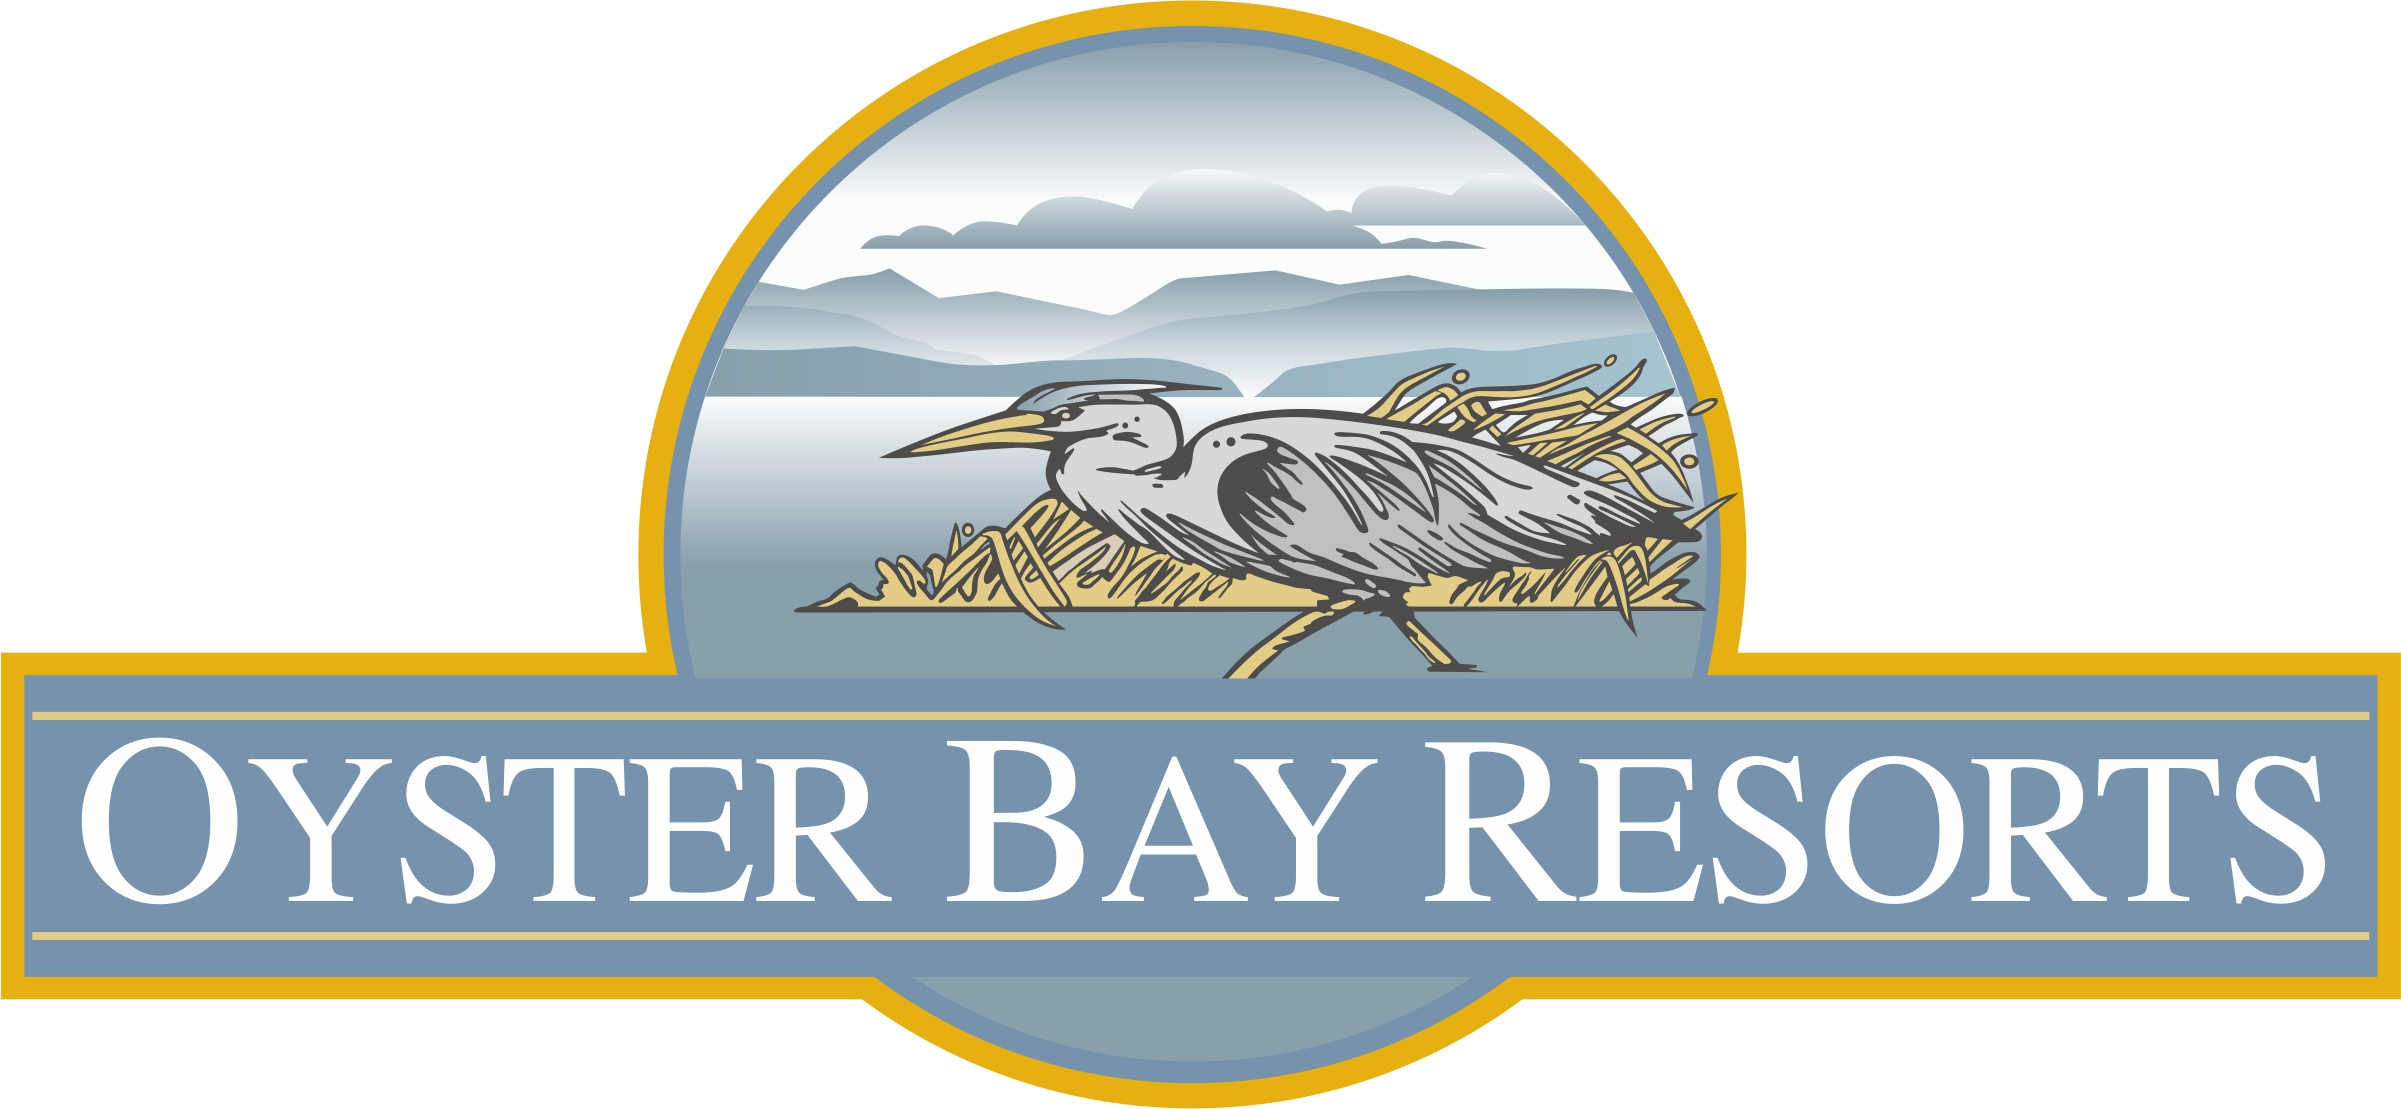 Oyster Bay Resort